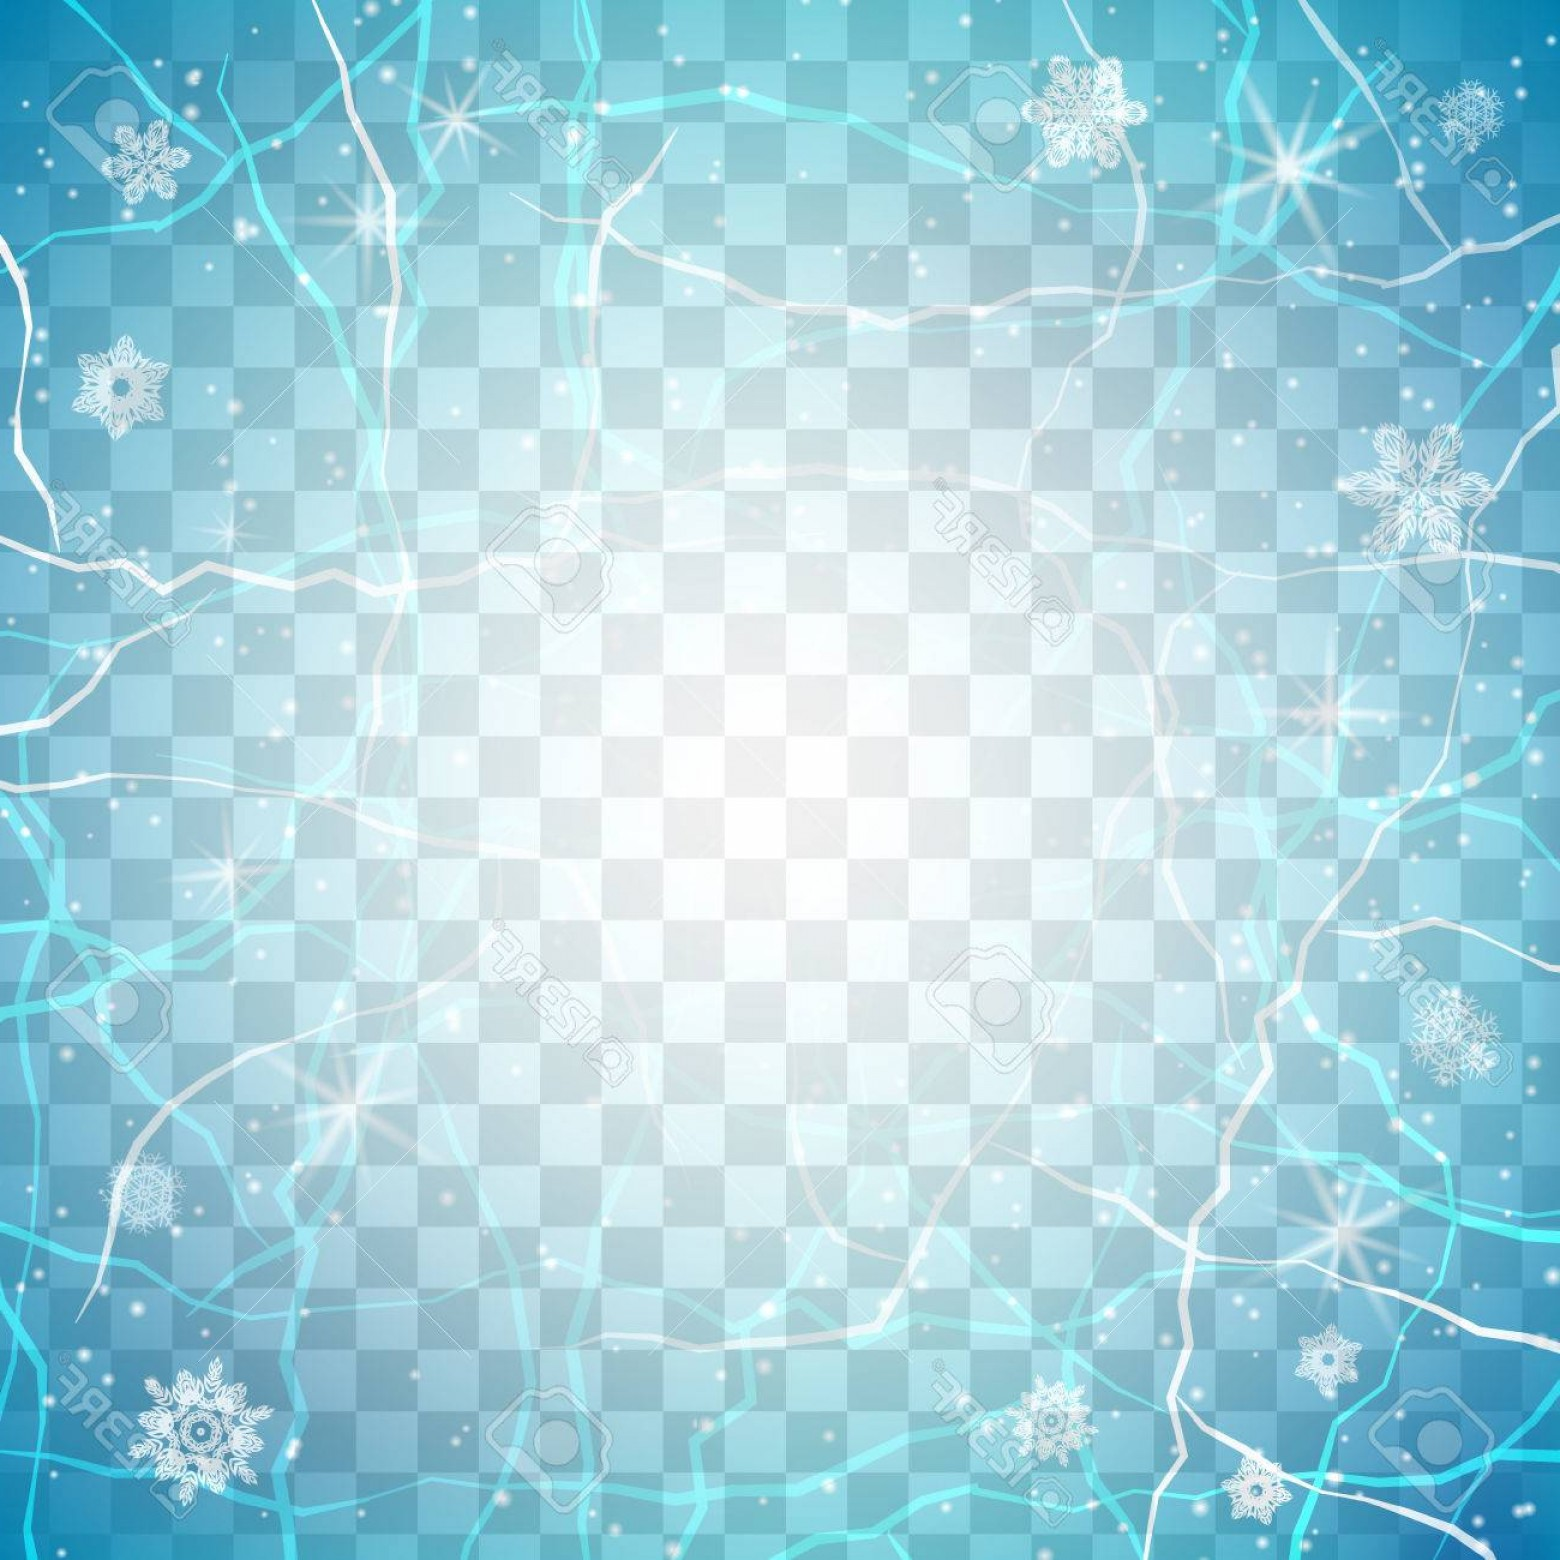 Frost Border Vector: Photostock Vector Frame Of Ice On Transparent Background Winter Frame Christmas Background Vector Illustration